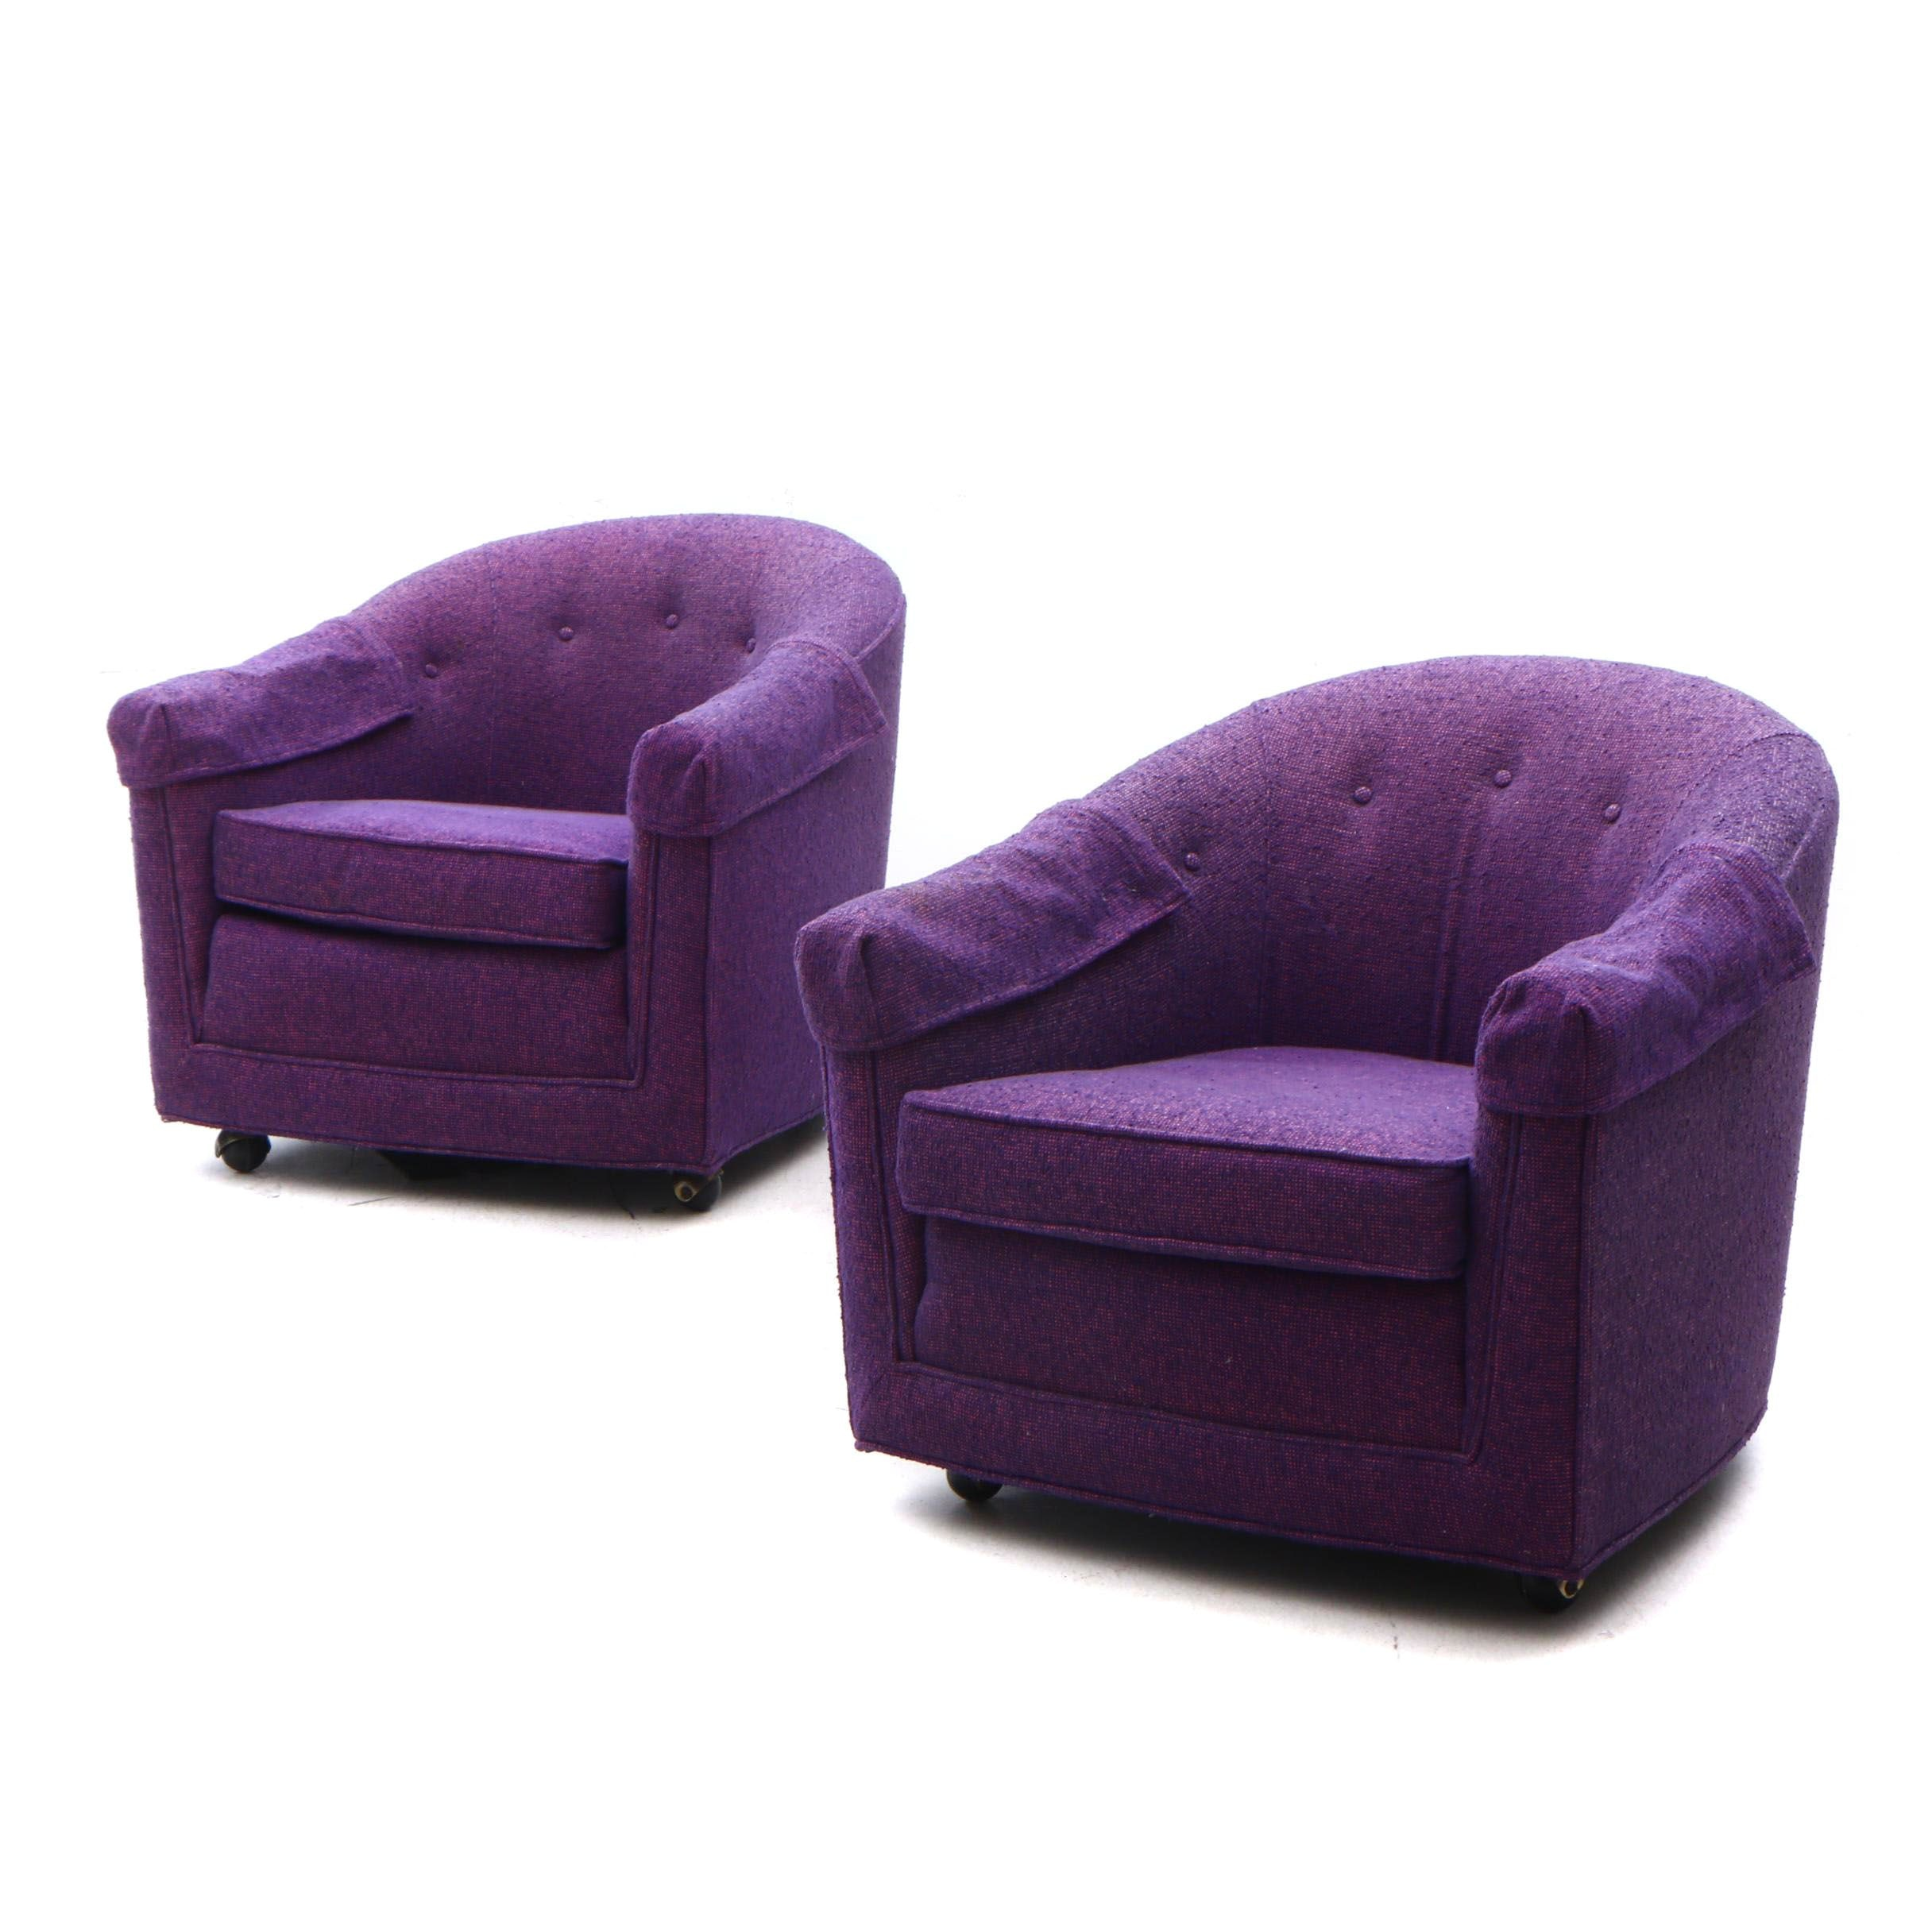 Upholstered Barrel Back Purple Arm Chairs on Casters